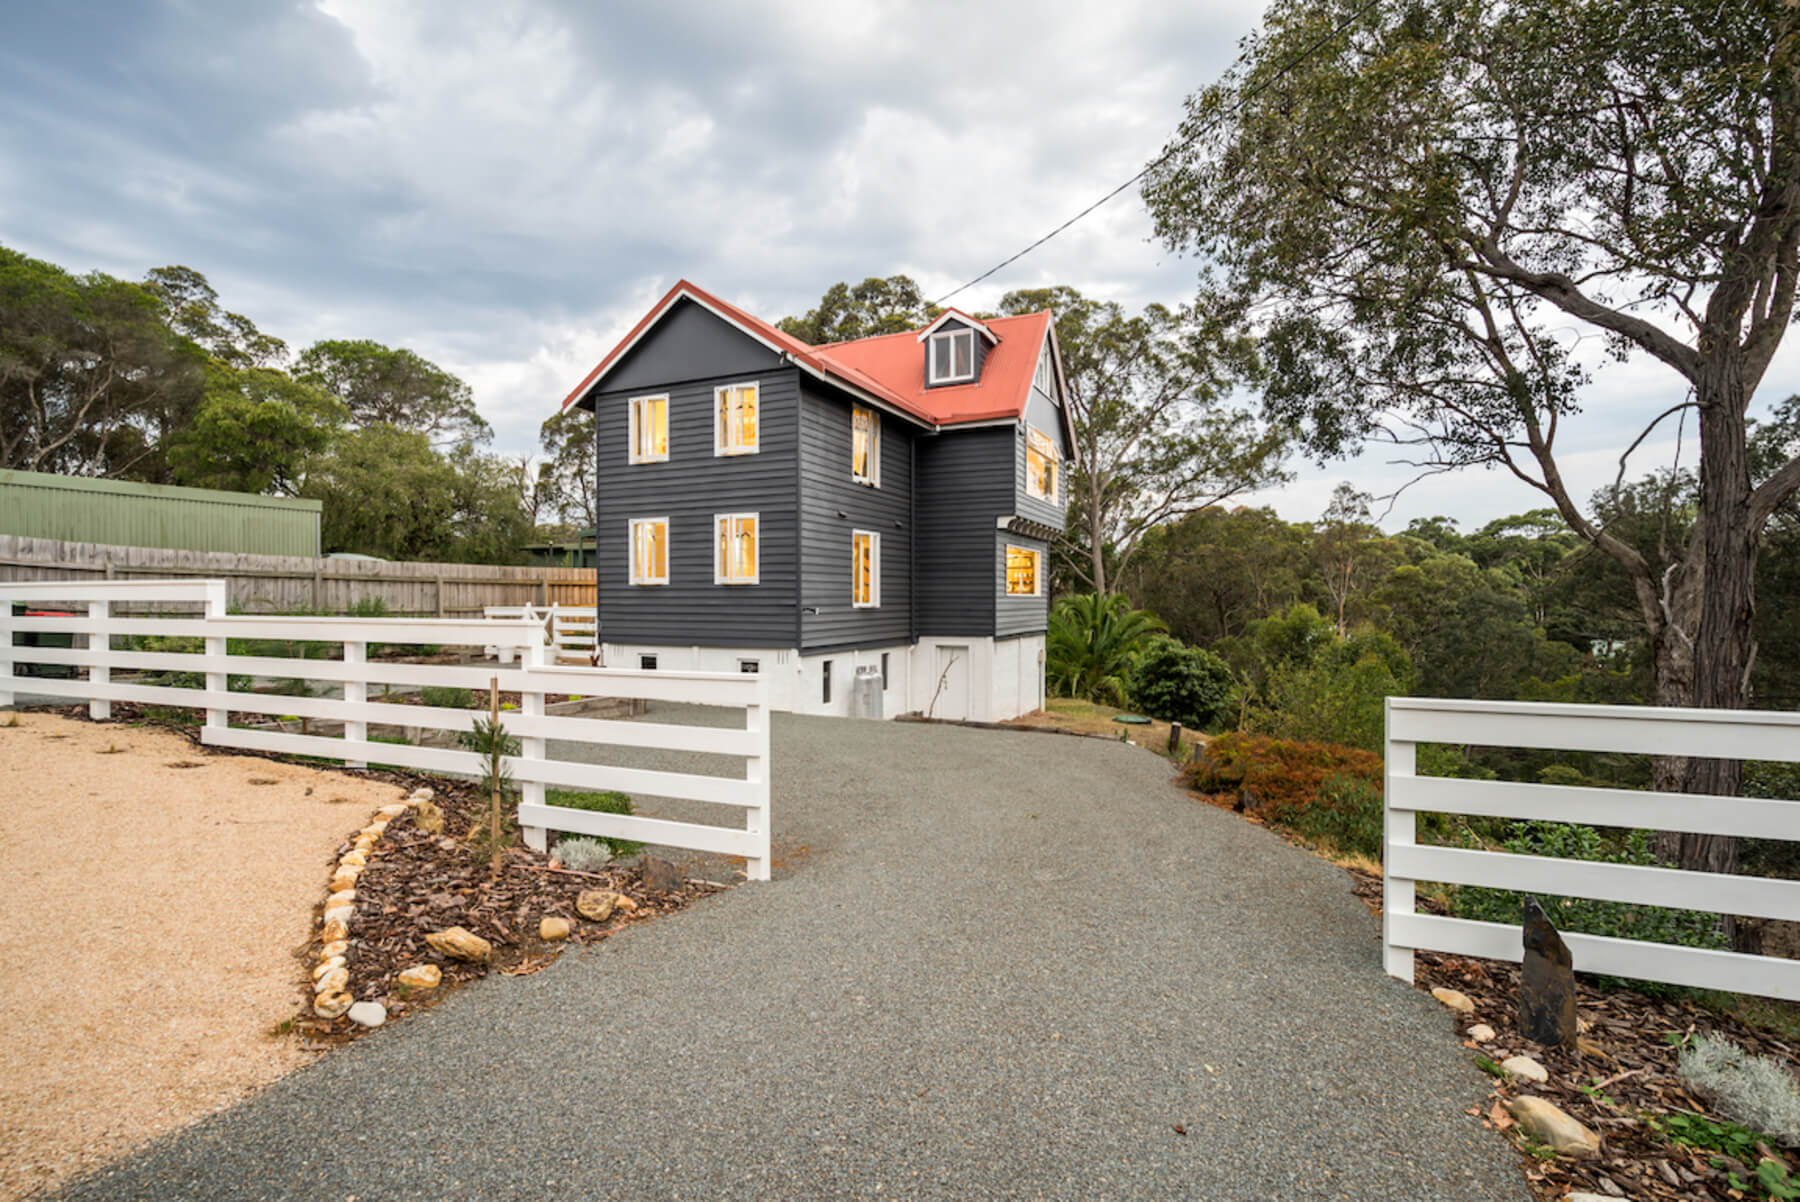 The Oar House - Metung - Gippsland Lakes - Vic | Pet Friendly